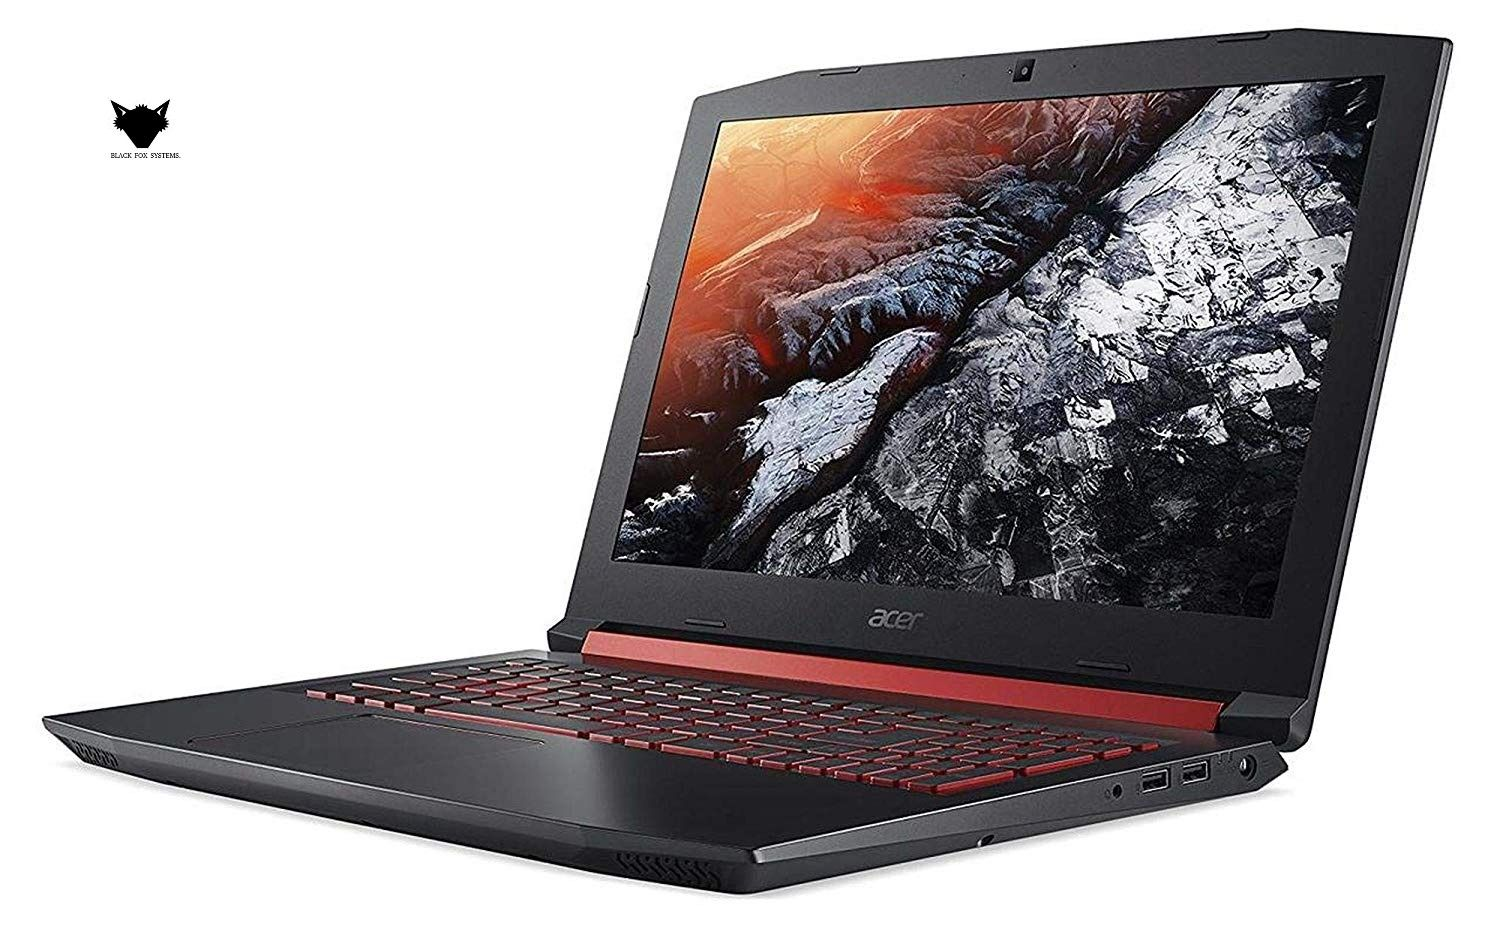 Acer Nitro 5 15 6 Laptop Intel I5 9300h 2 4ghz 8gb Ram 256gb Ssd Windows 10 Home Renewed In 2020 Laptop Screen Repair Gaming Laptops Laptop